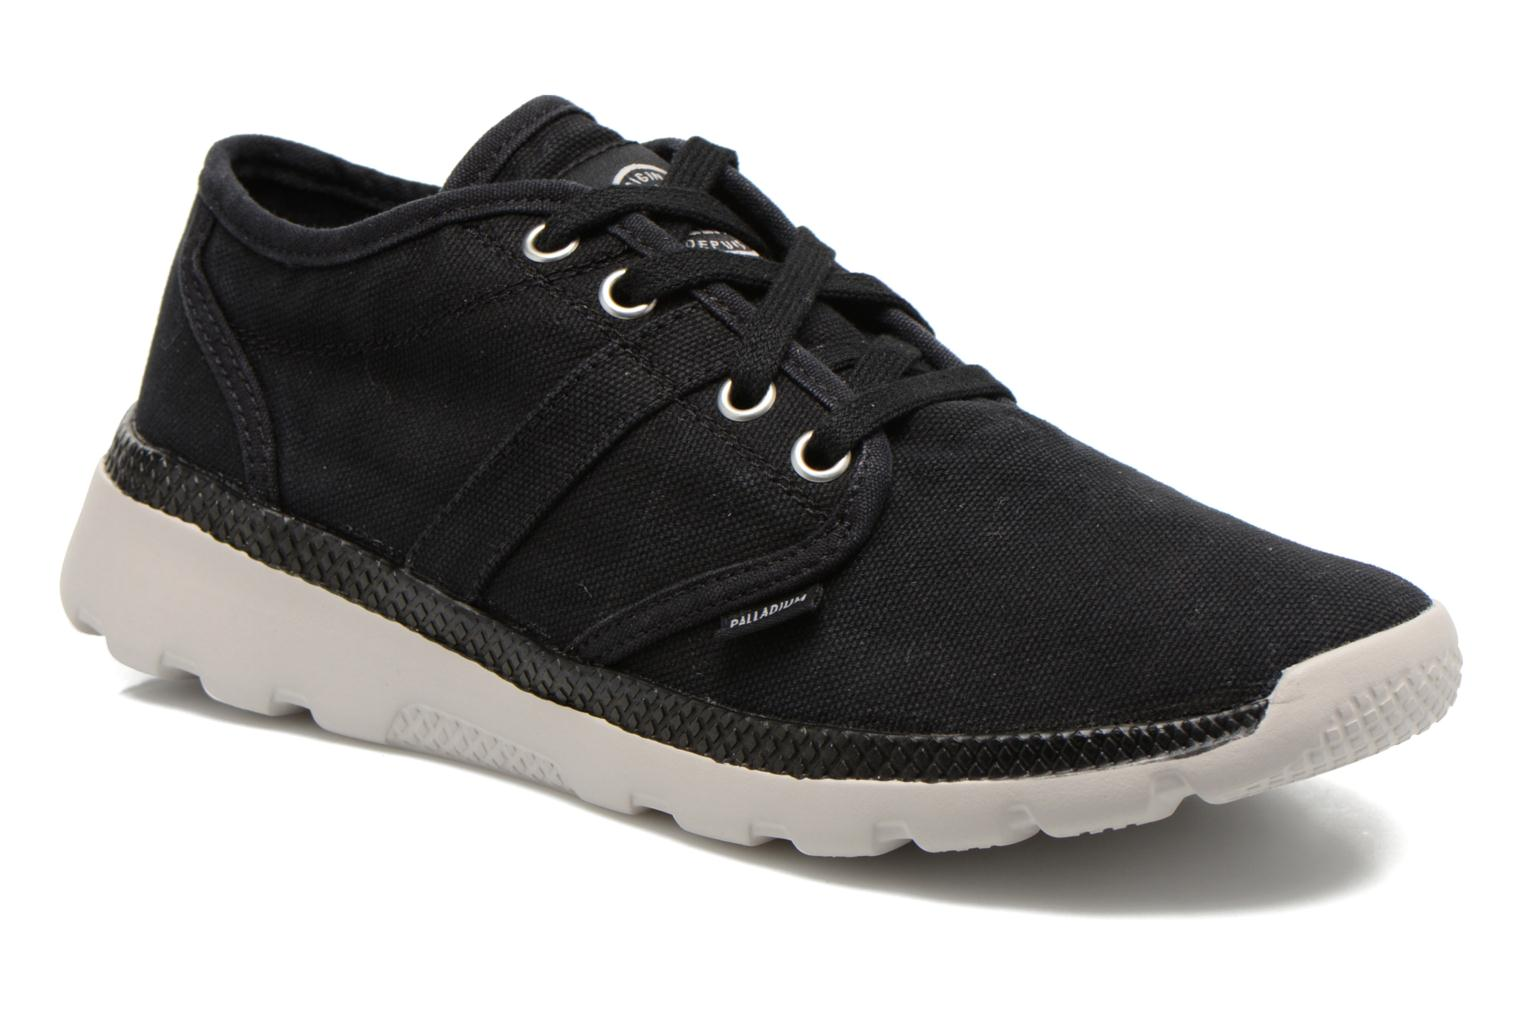 sneakers-pallaville-cvs-by-palladium